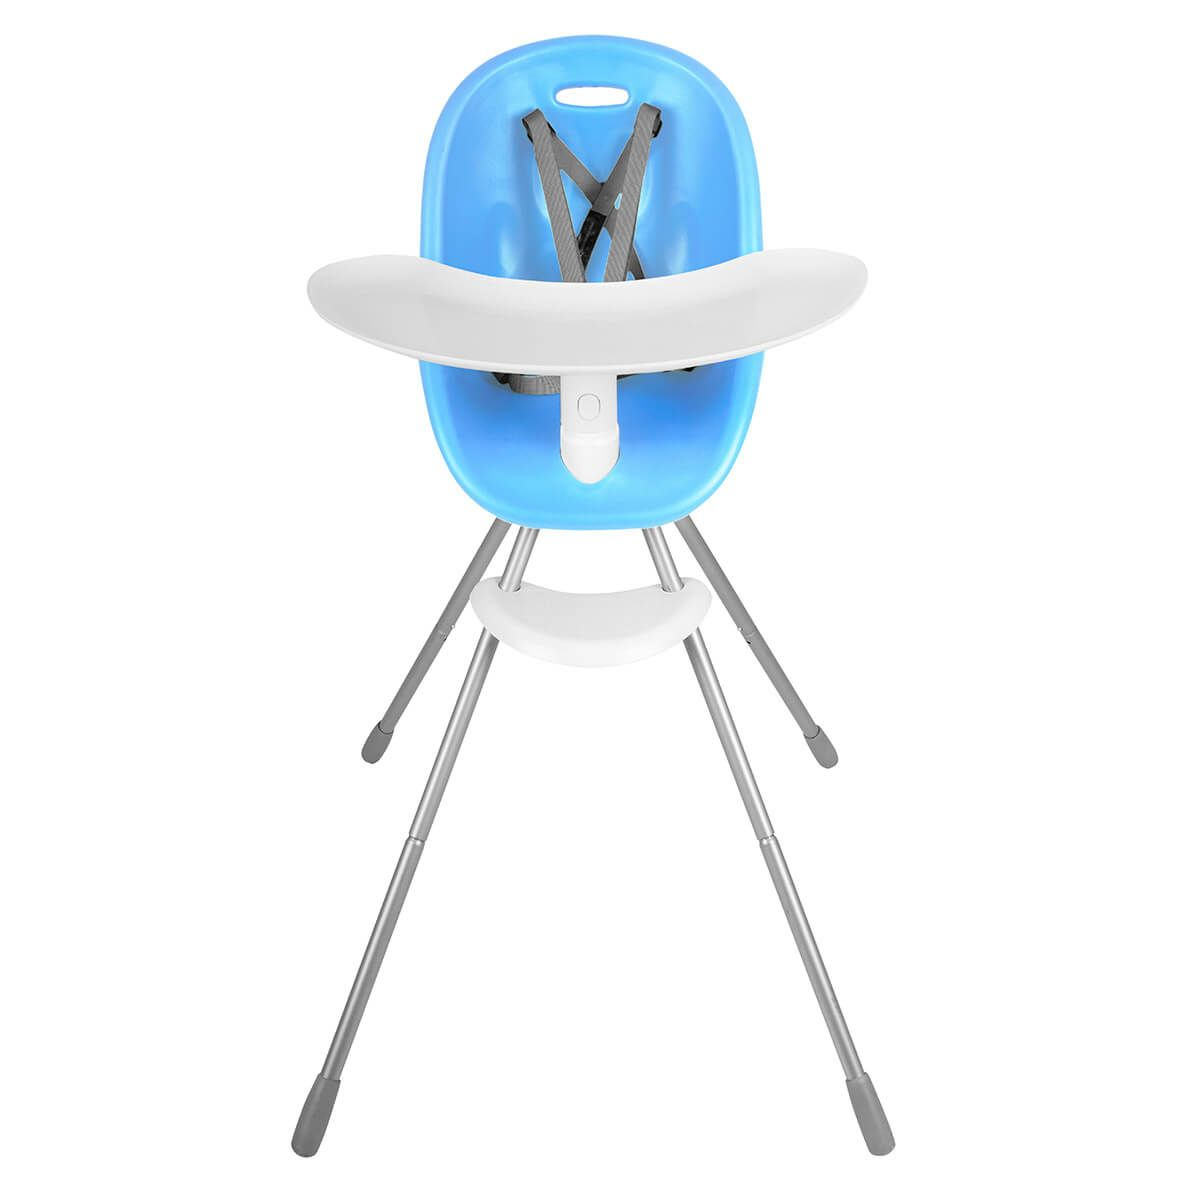 Phil & Ted's Poppy High Chair in Bubblegum blue